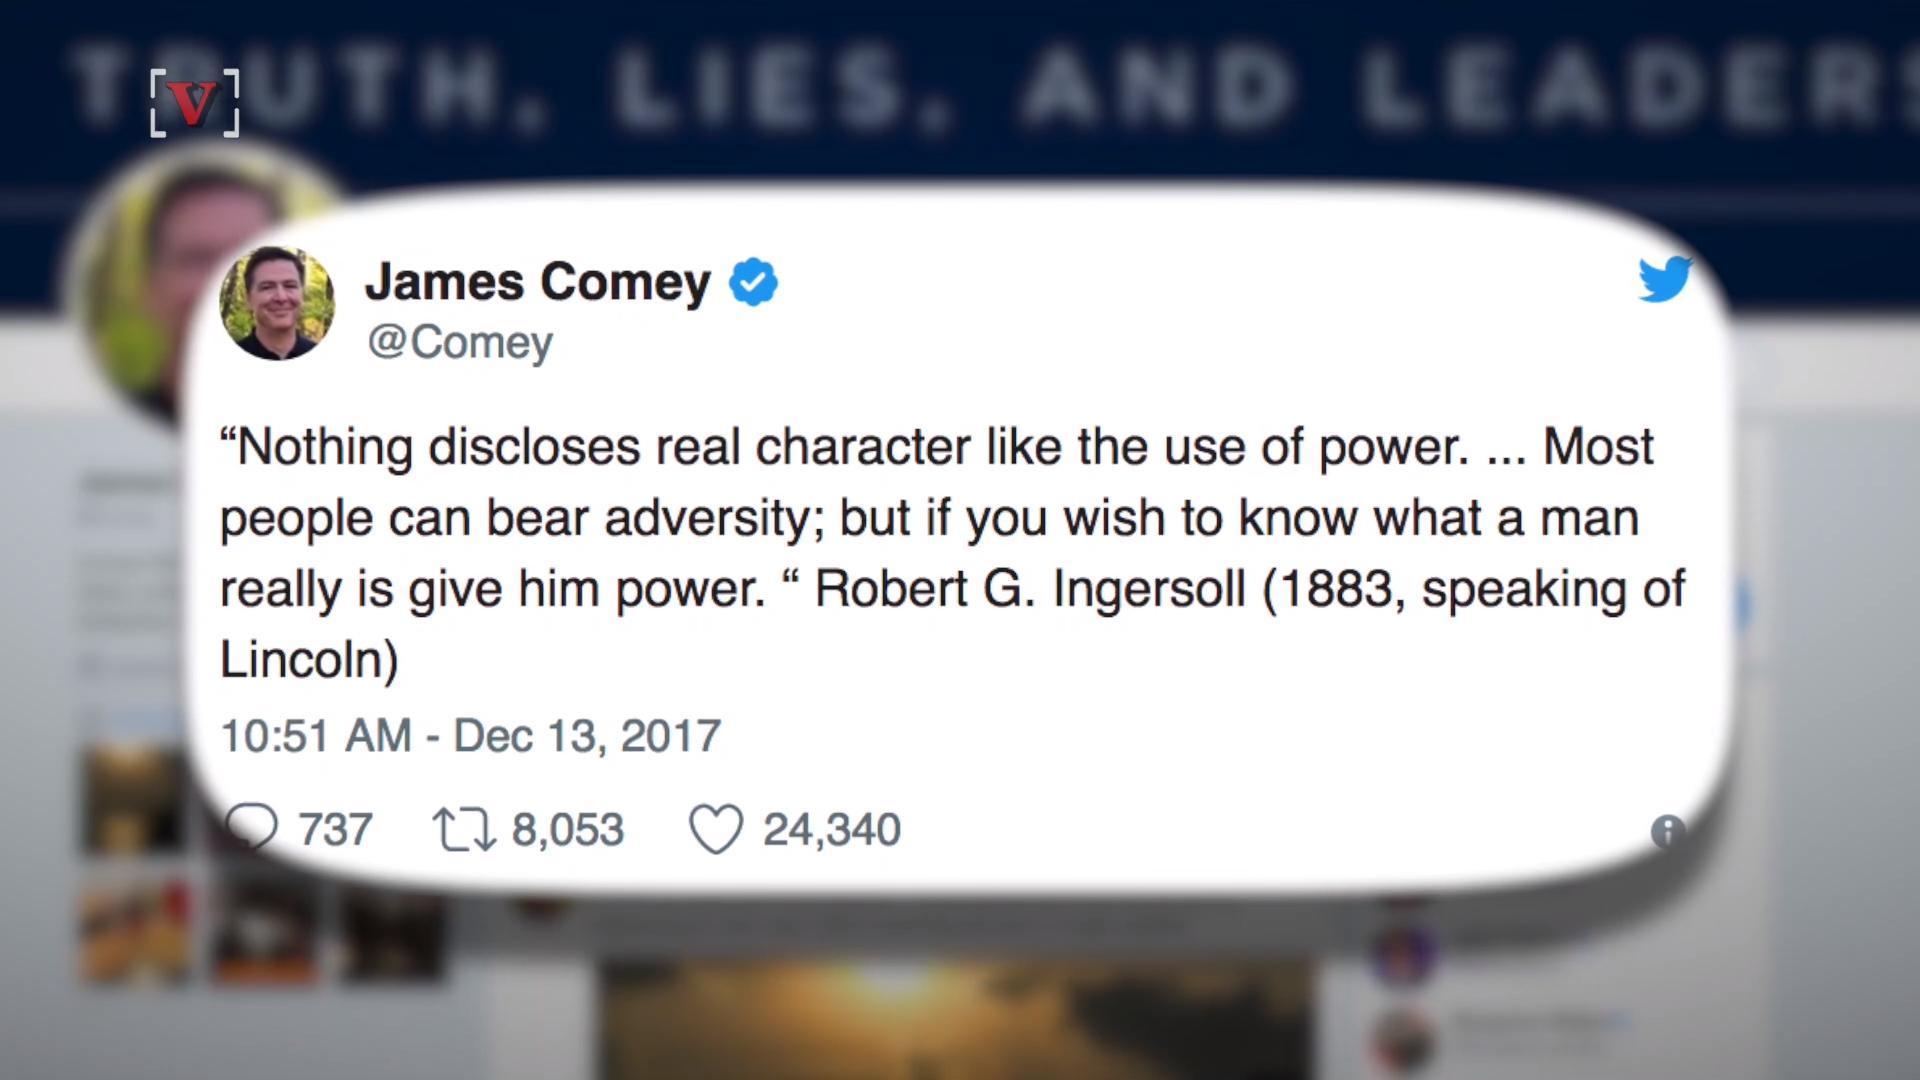 James Comey Sends Cryptic Tweet Over 'Character' of Leaders